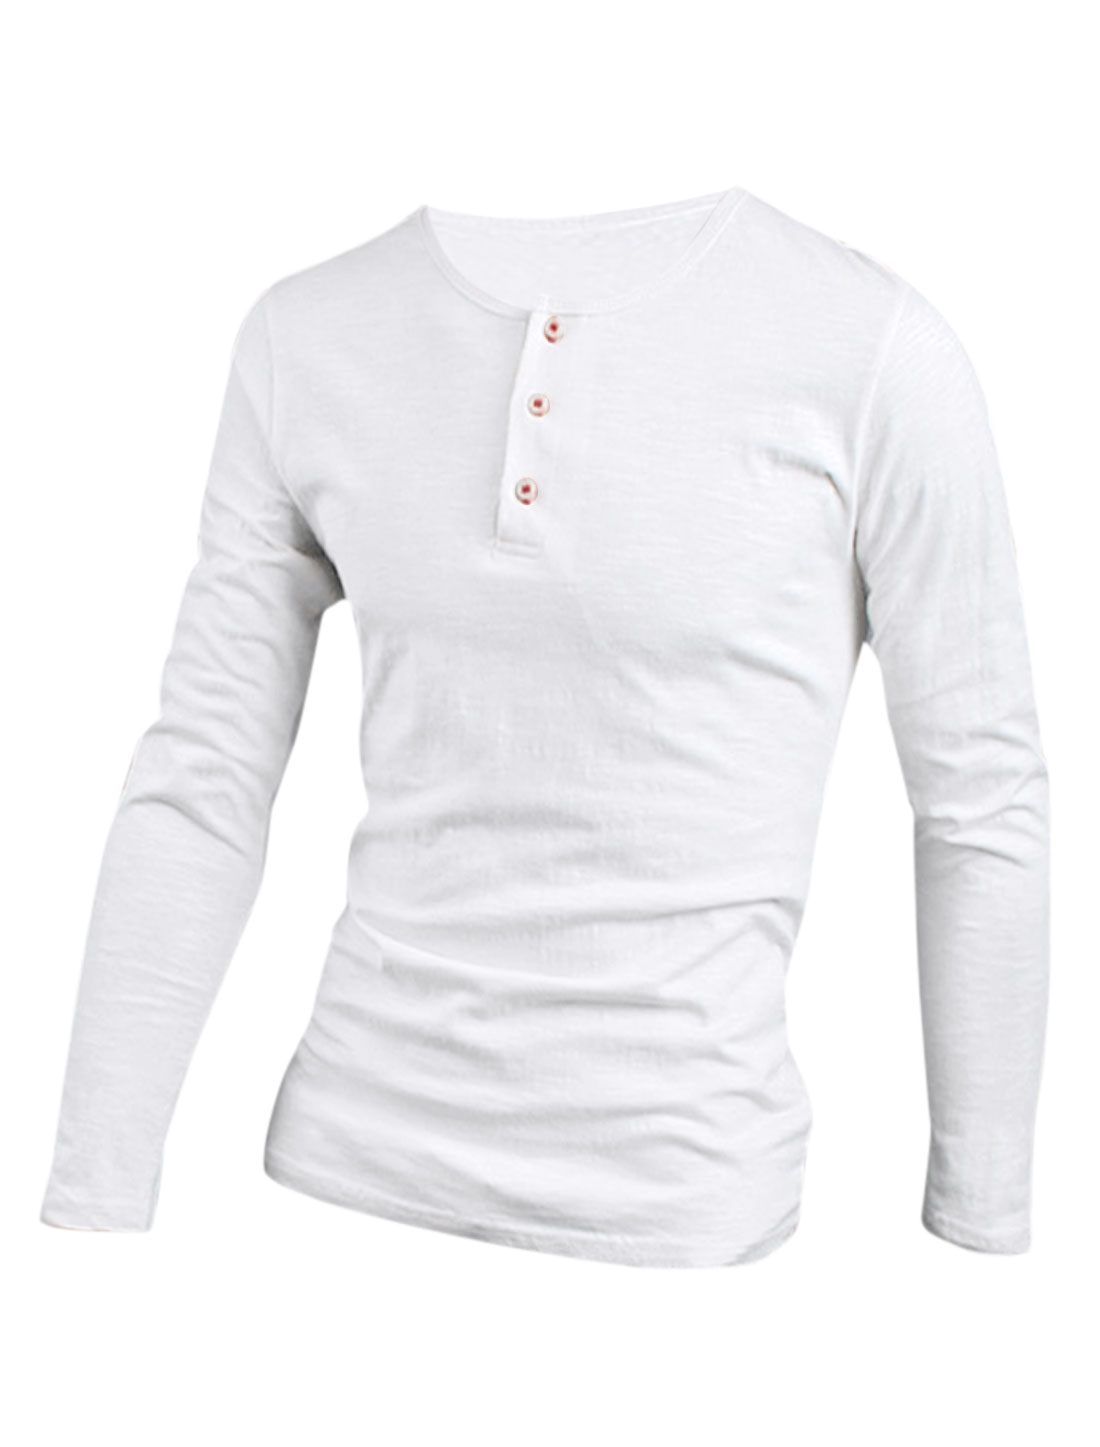 Soft 1/4 Placket Casual Henley Shirt for Men White M